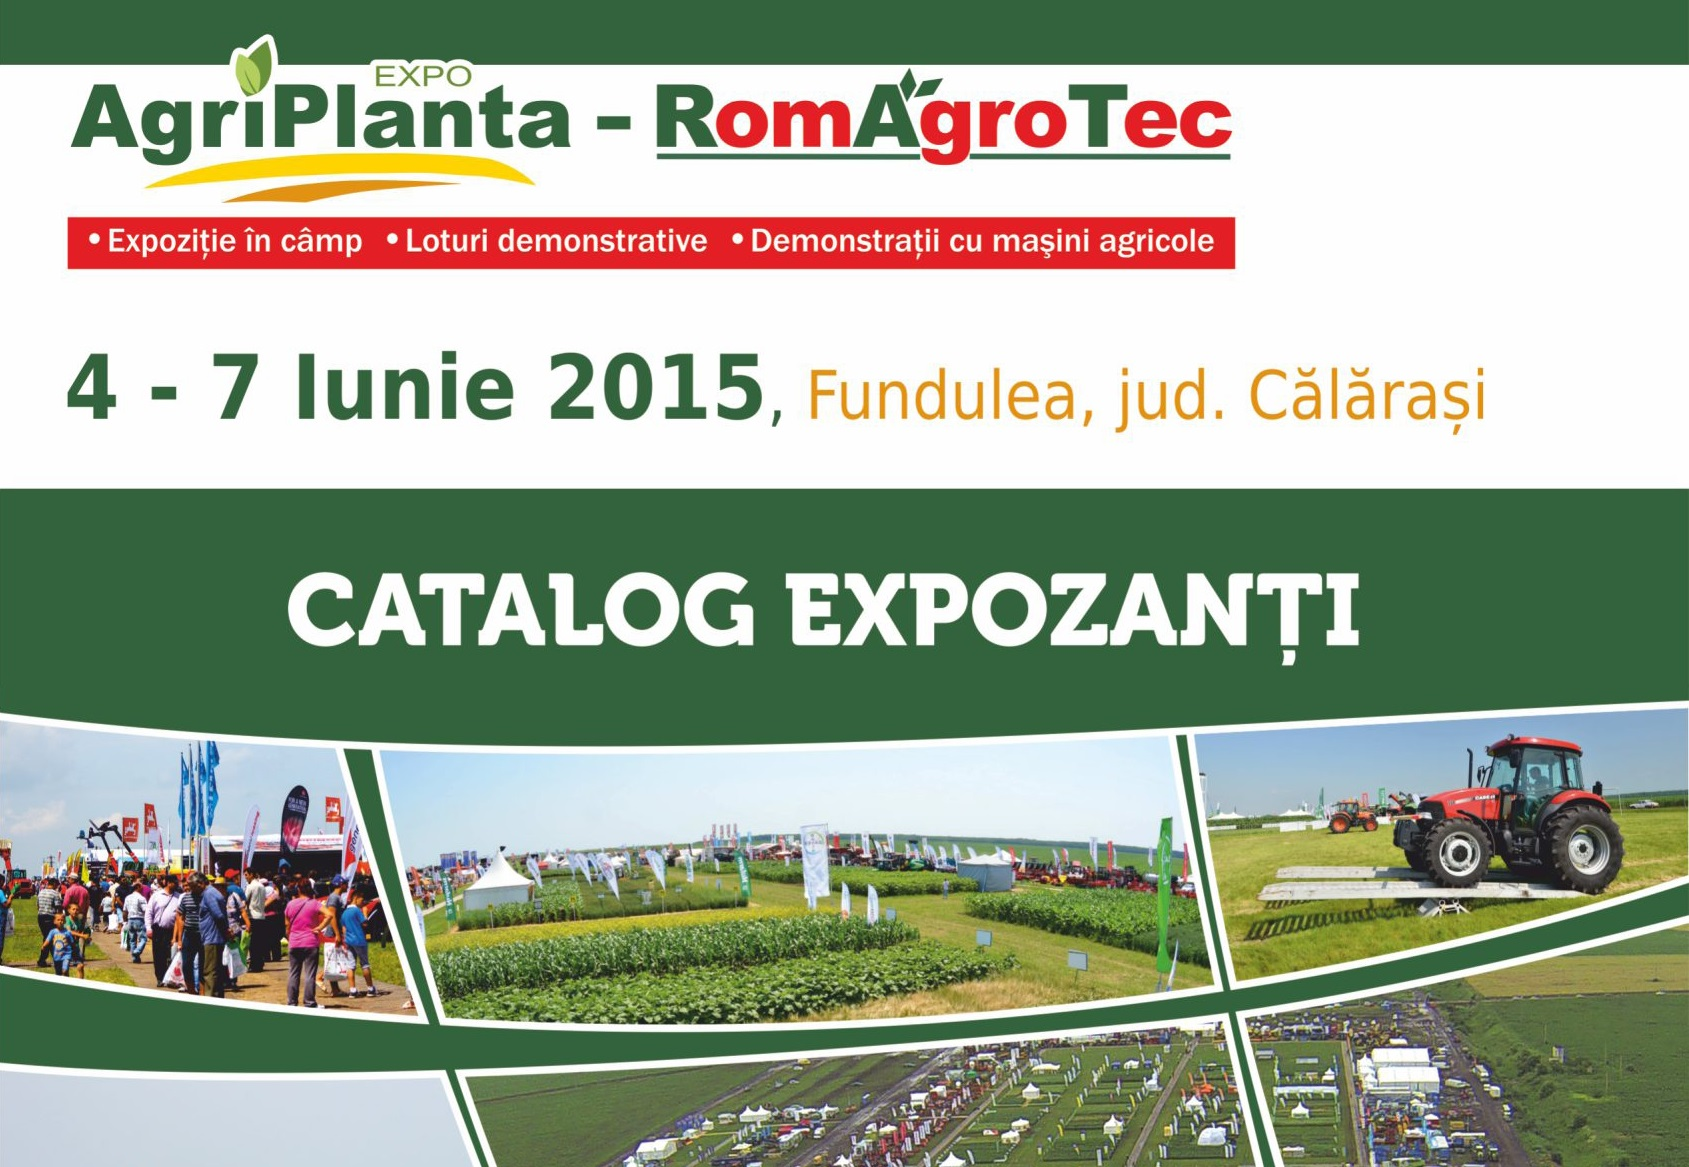 Daymsa will be present at Expo Agriplanta 2015 in Romania